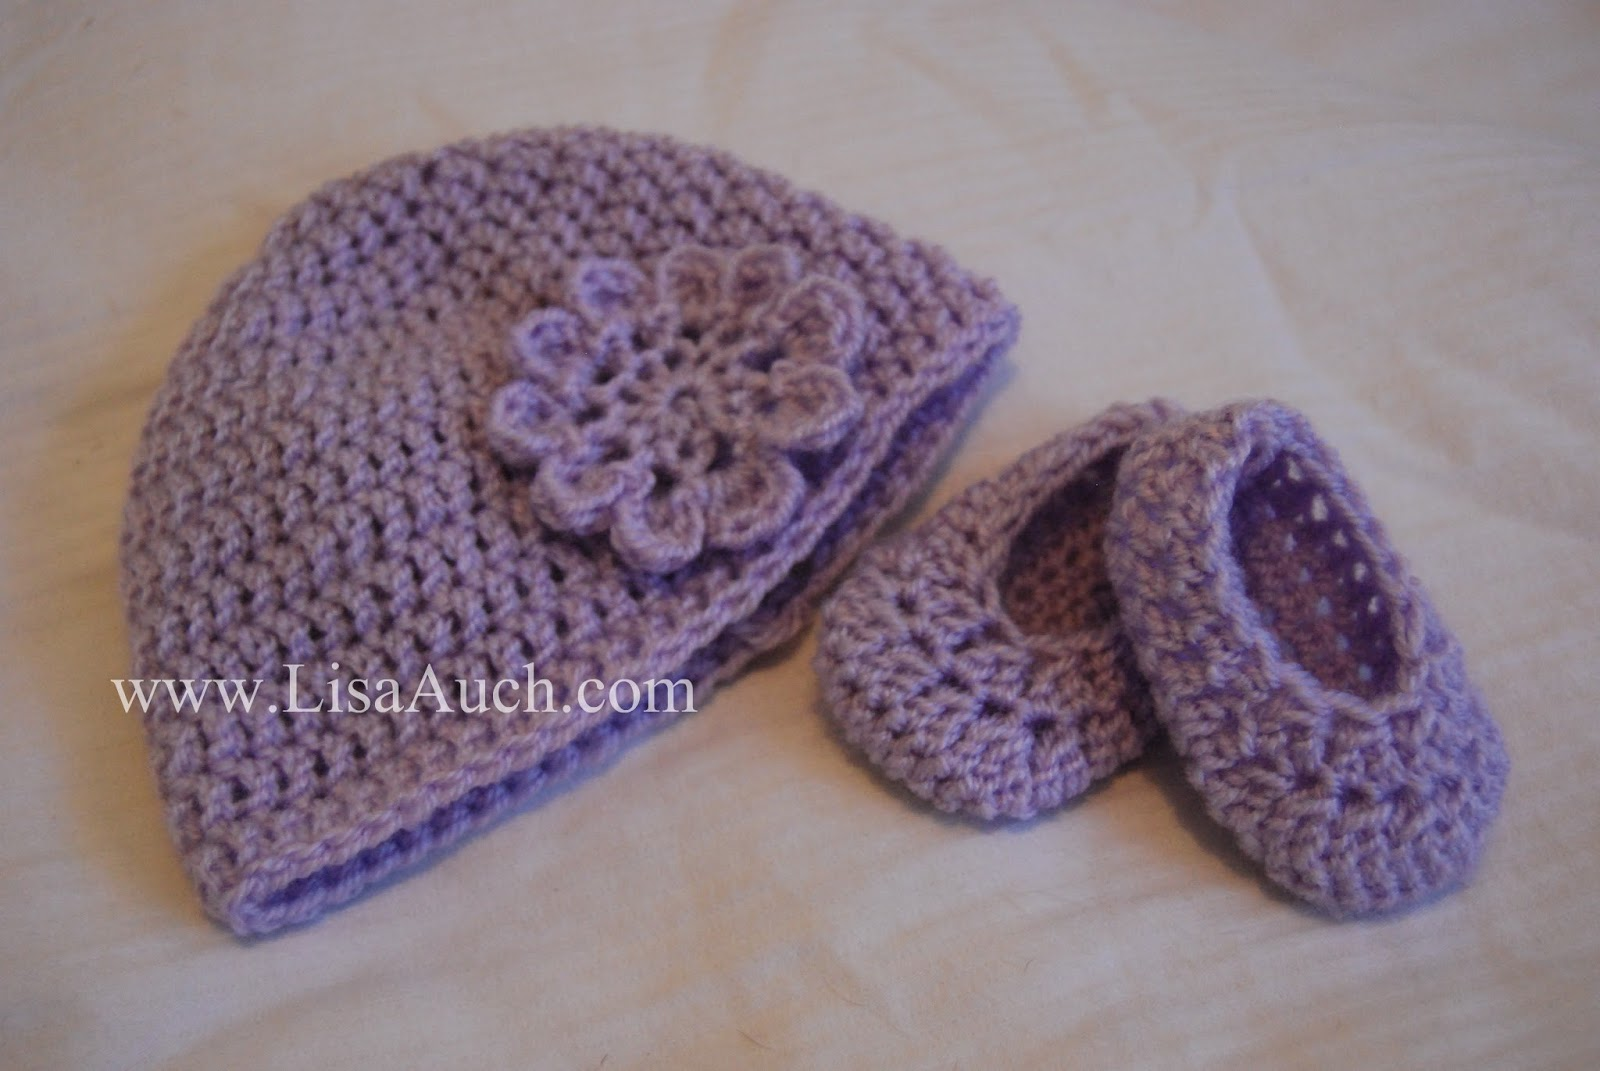 Unisex Baby Booties Free Crochet Pattern : Crochet Beanie Pattern Free Easy Crochet Patterns Beginner ...